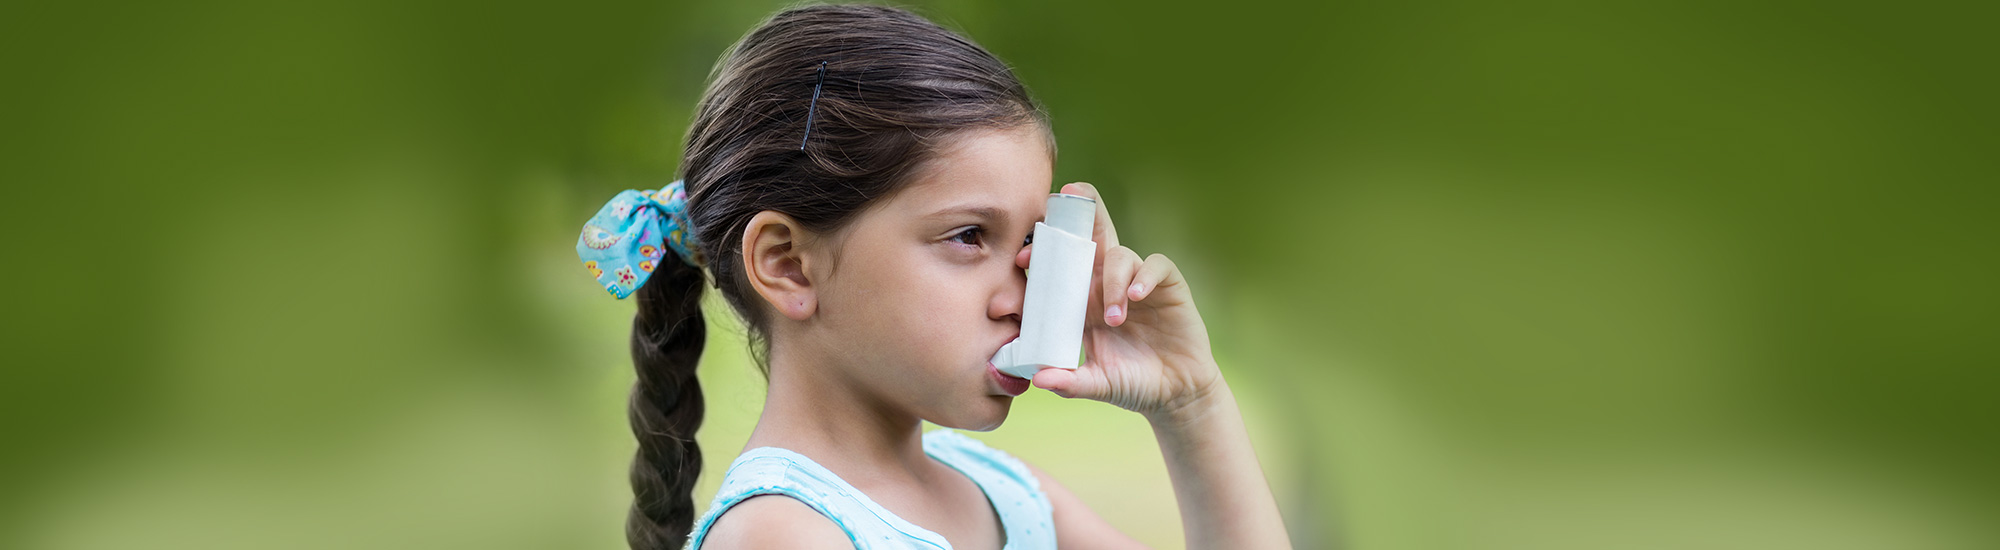 Ayurvedic treatment for Asthma in children Symptoms